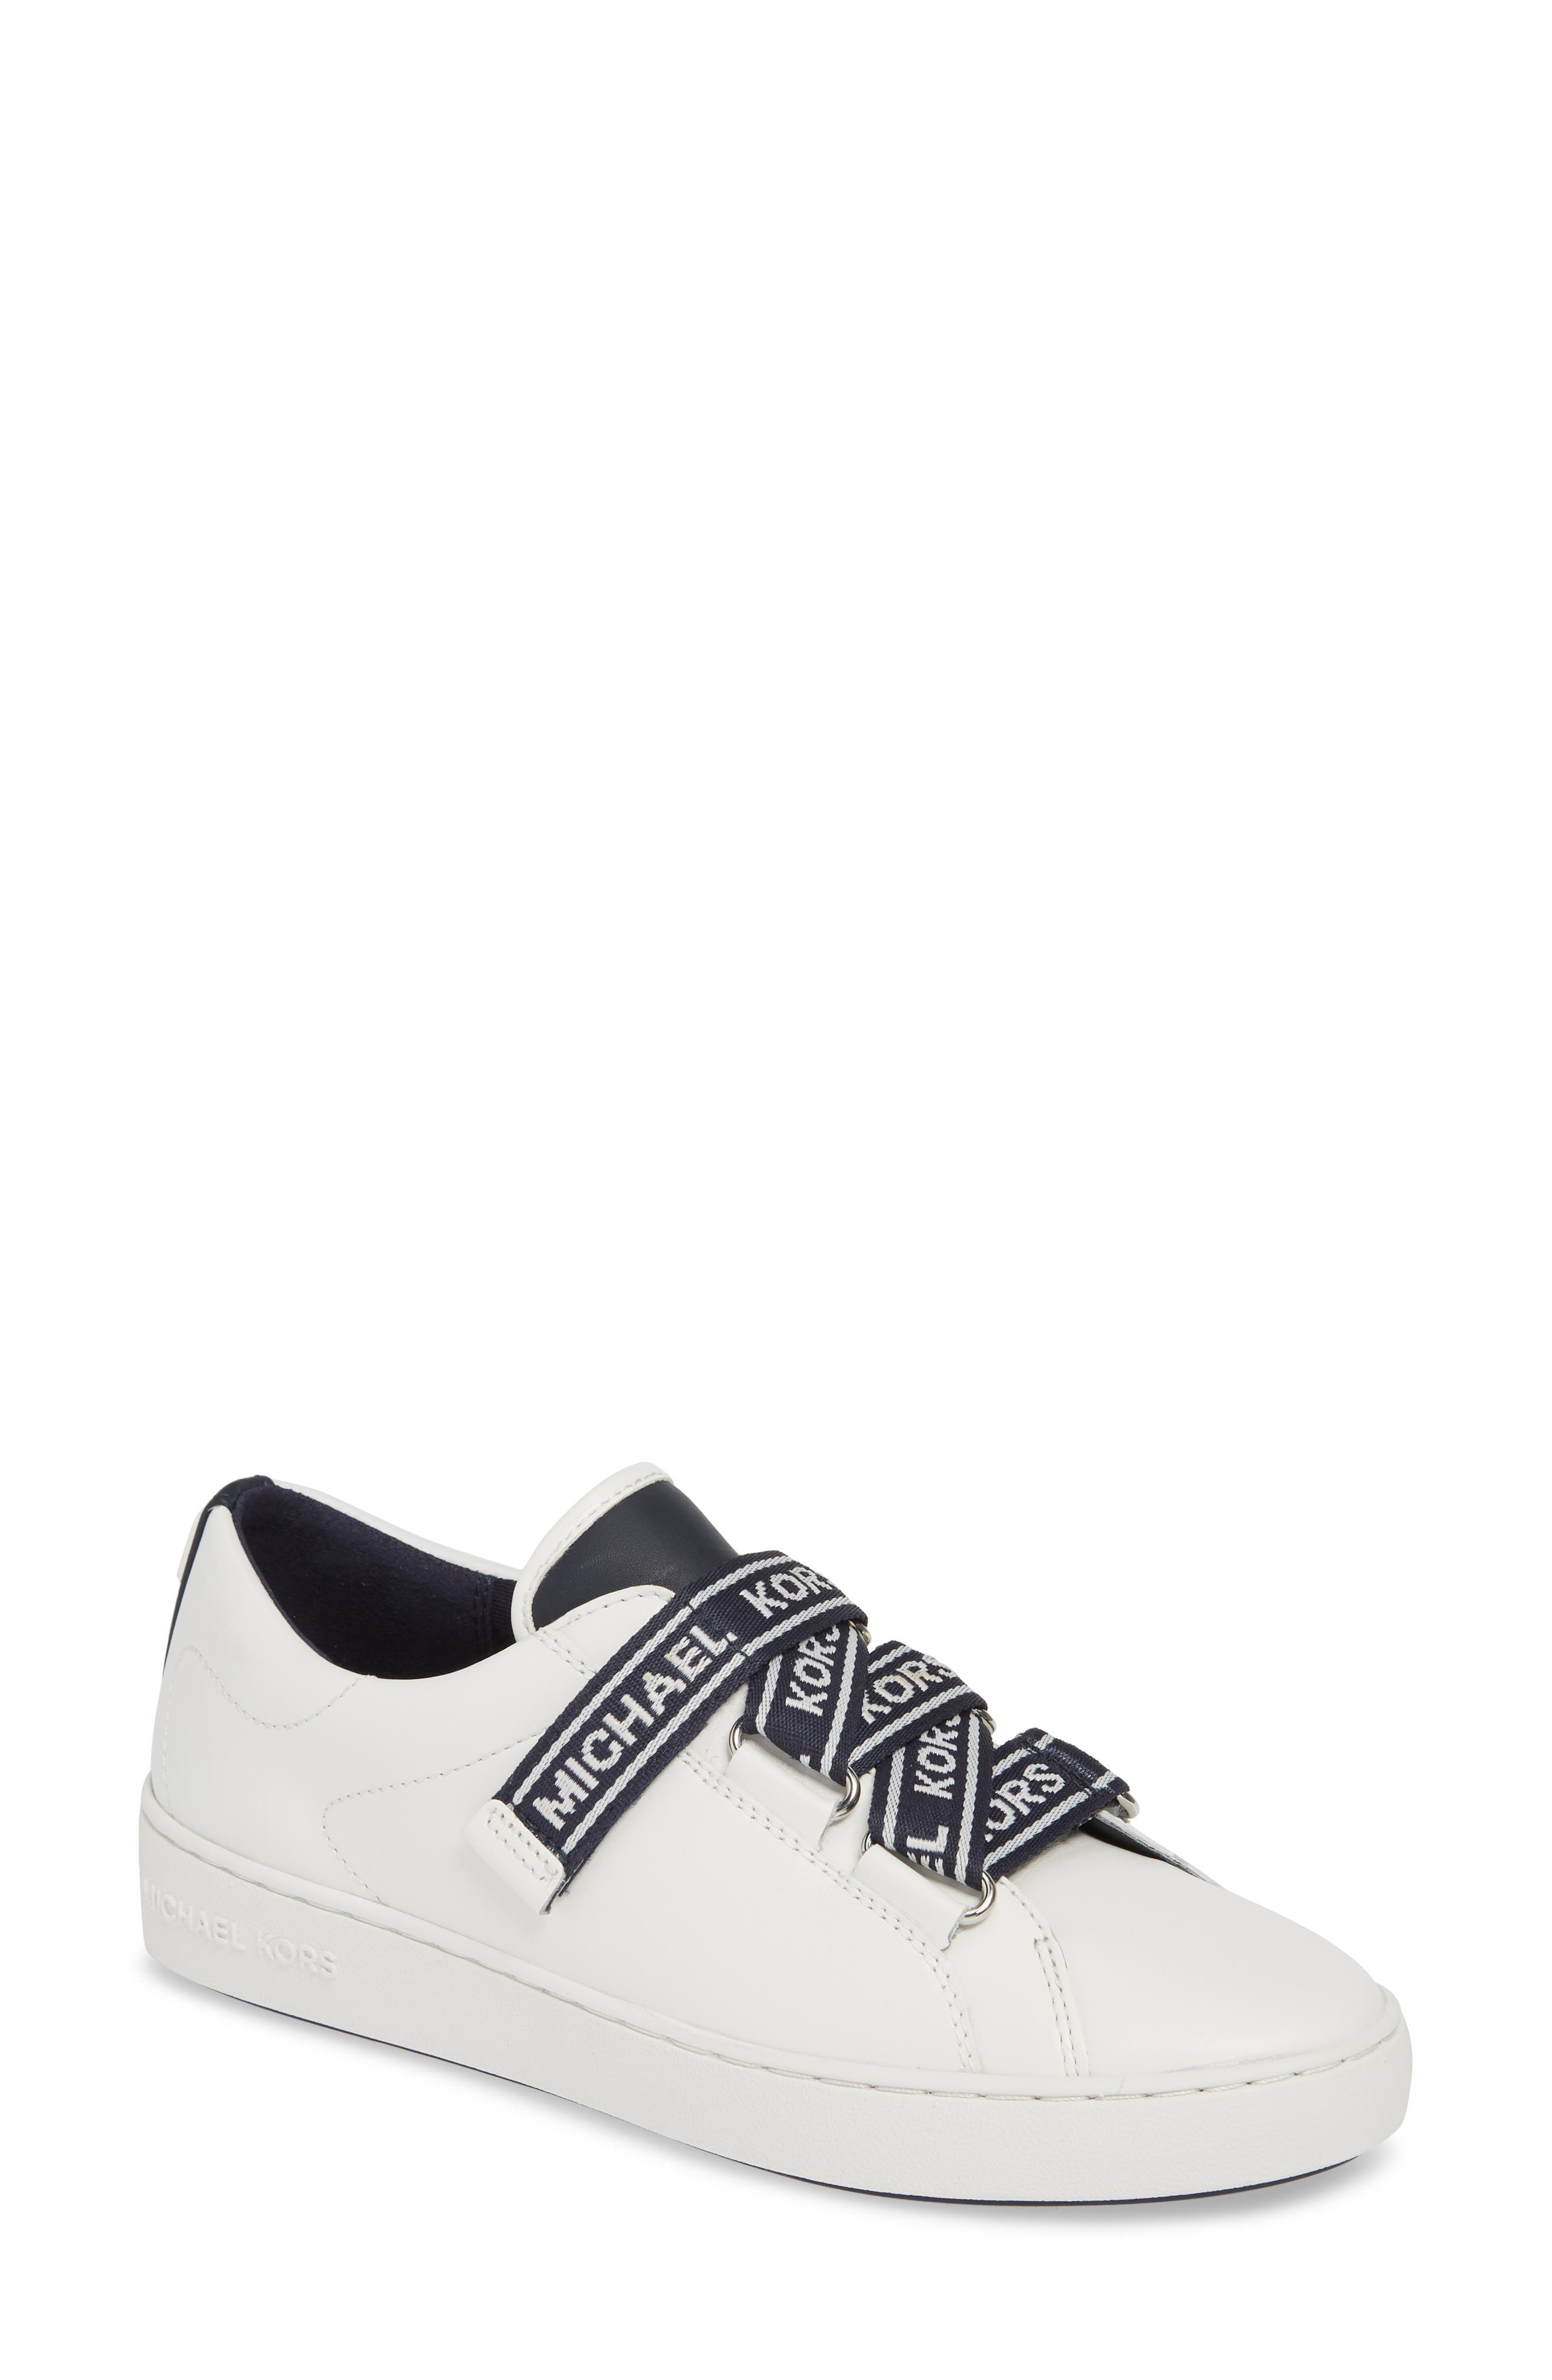 MICHAEL MICHAEL KORS Casey Low Top Sneaker, Main, color, ADMIRAL/ WHITE